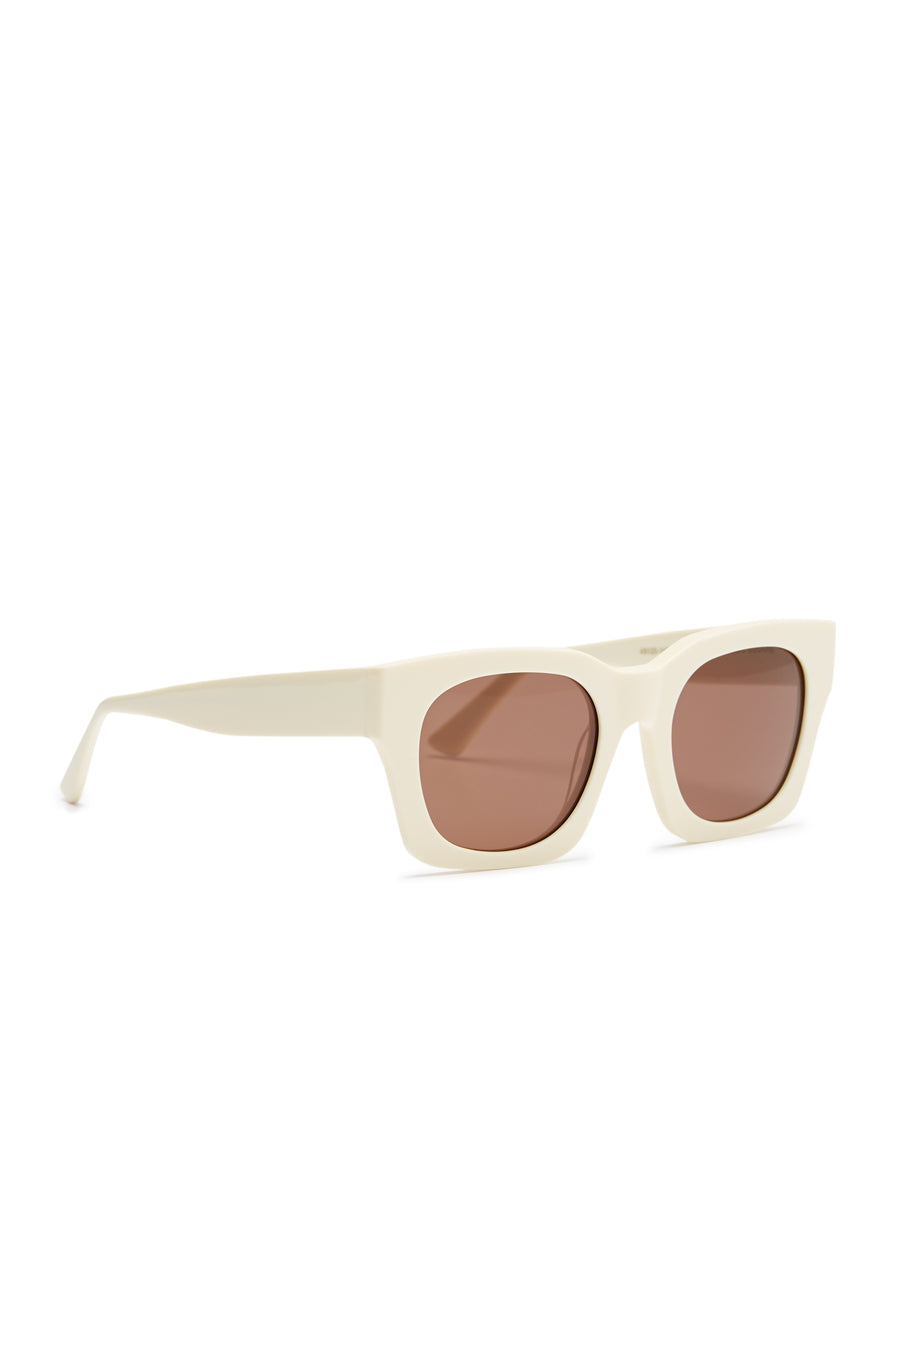 CLASSIC SQUARE SUNGLASSES CREAM